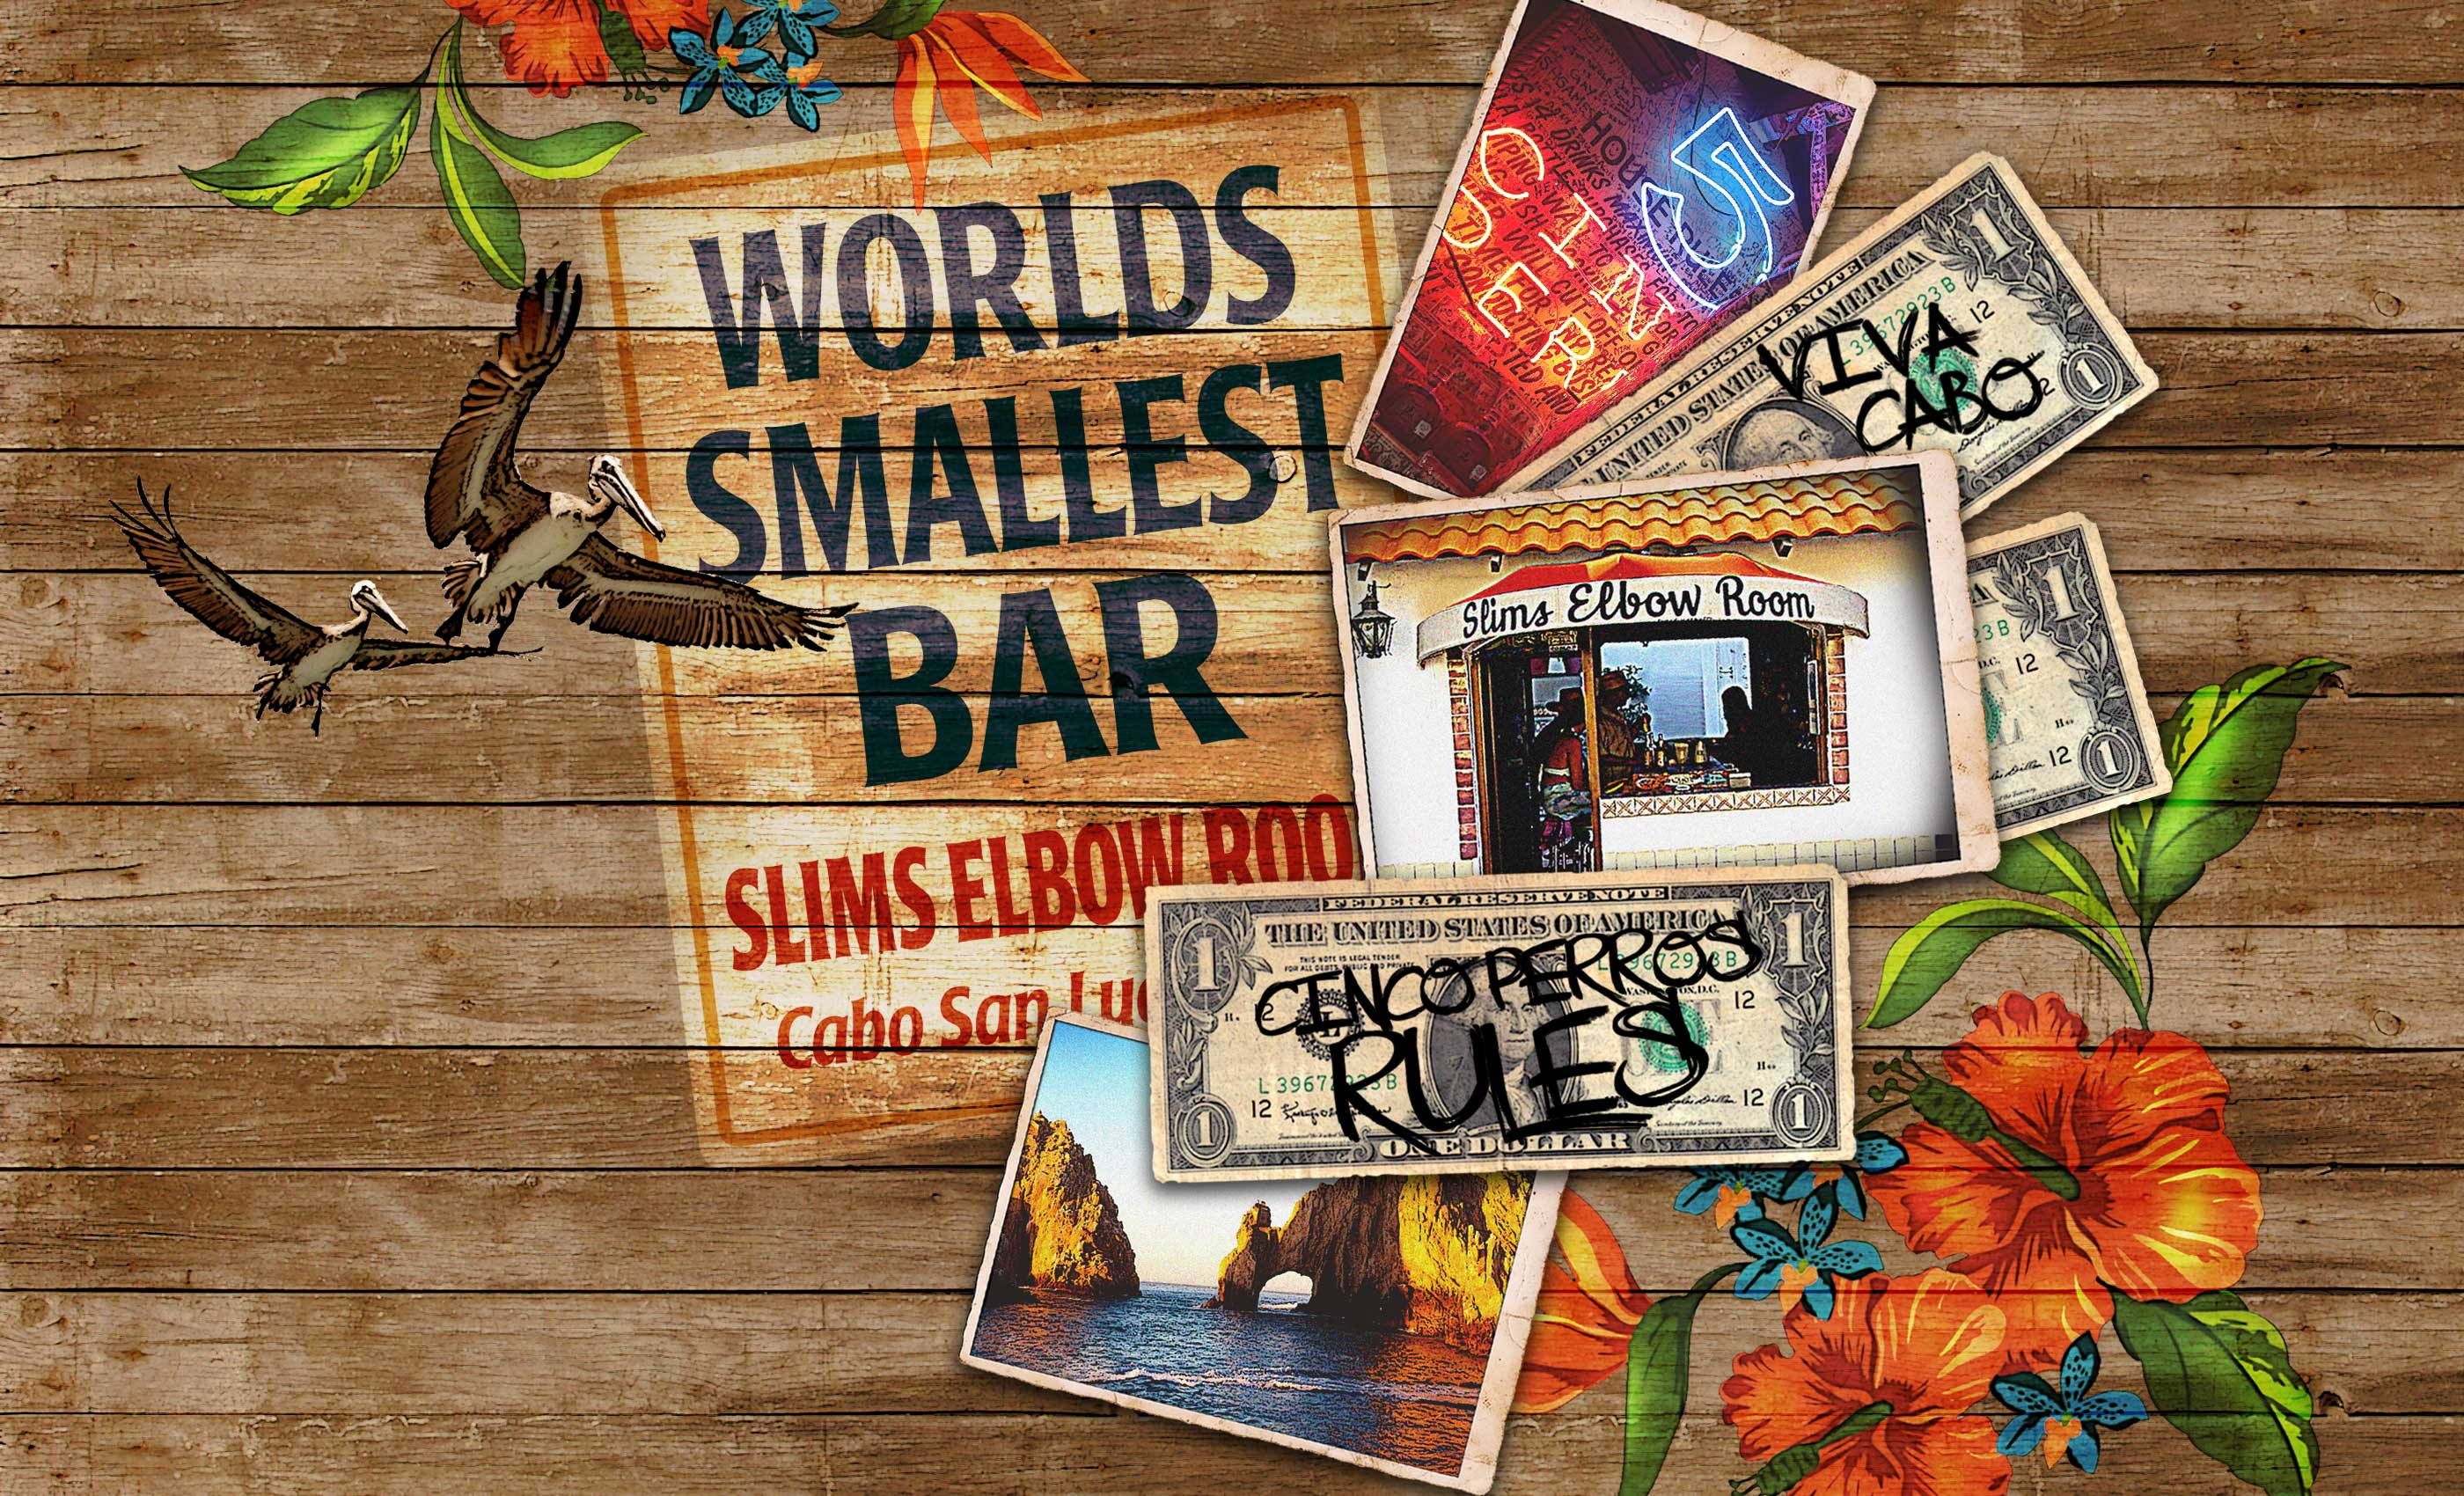 Cabo San Lucas - Slims Elbow Room - Worlds Smallest Bar